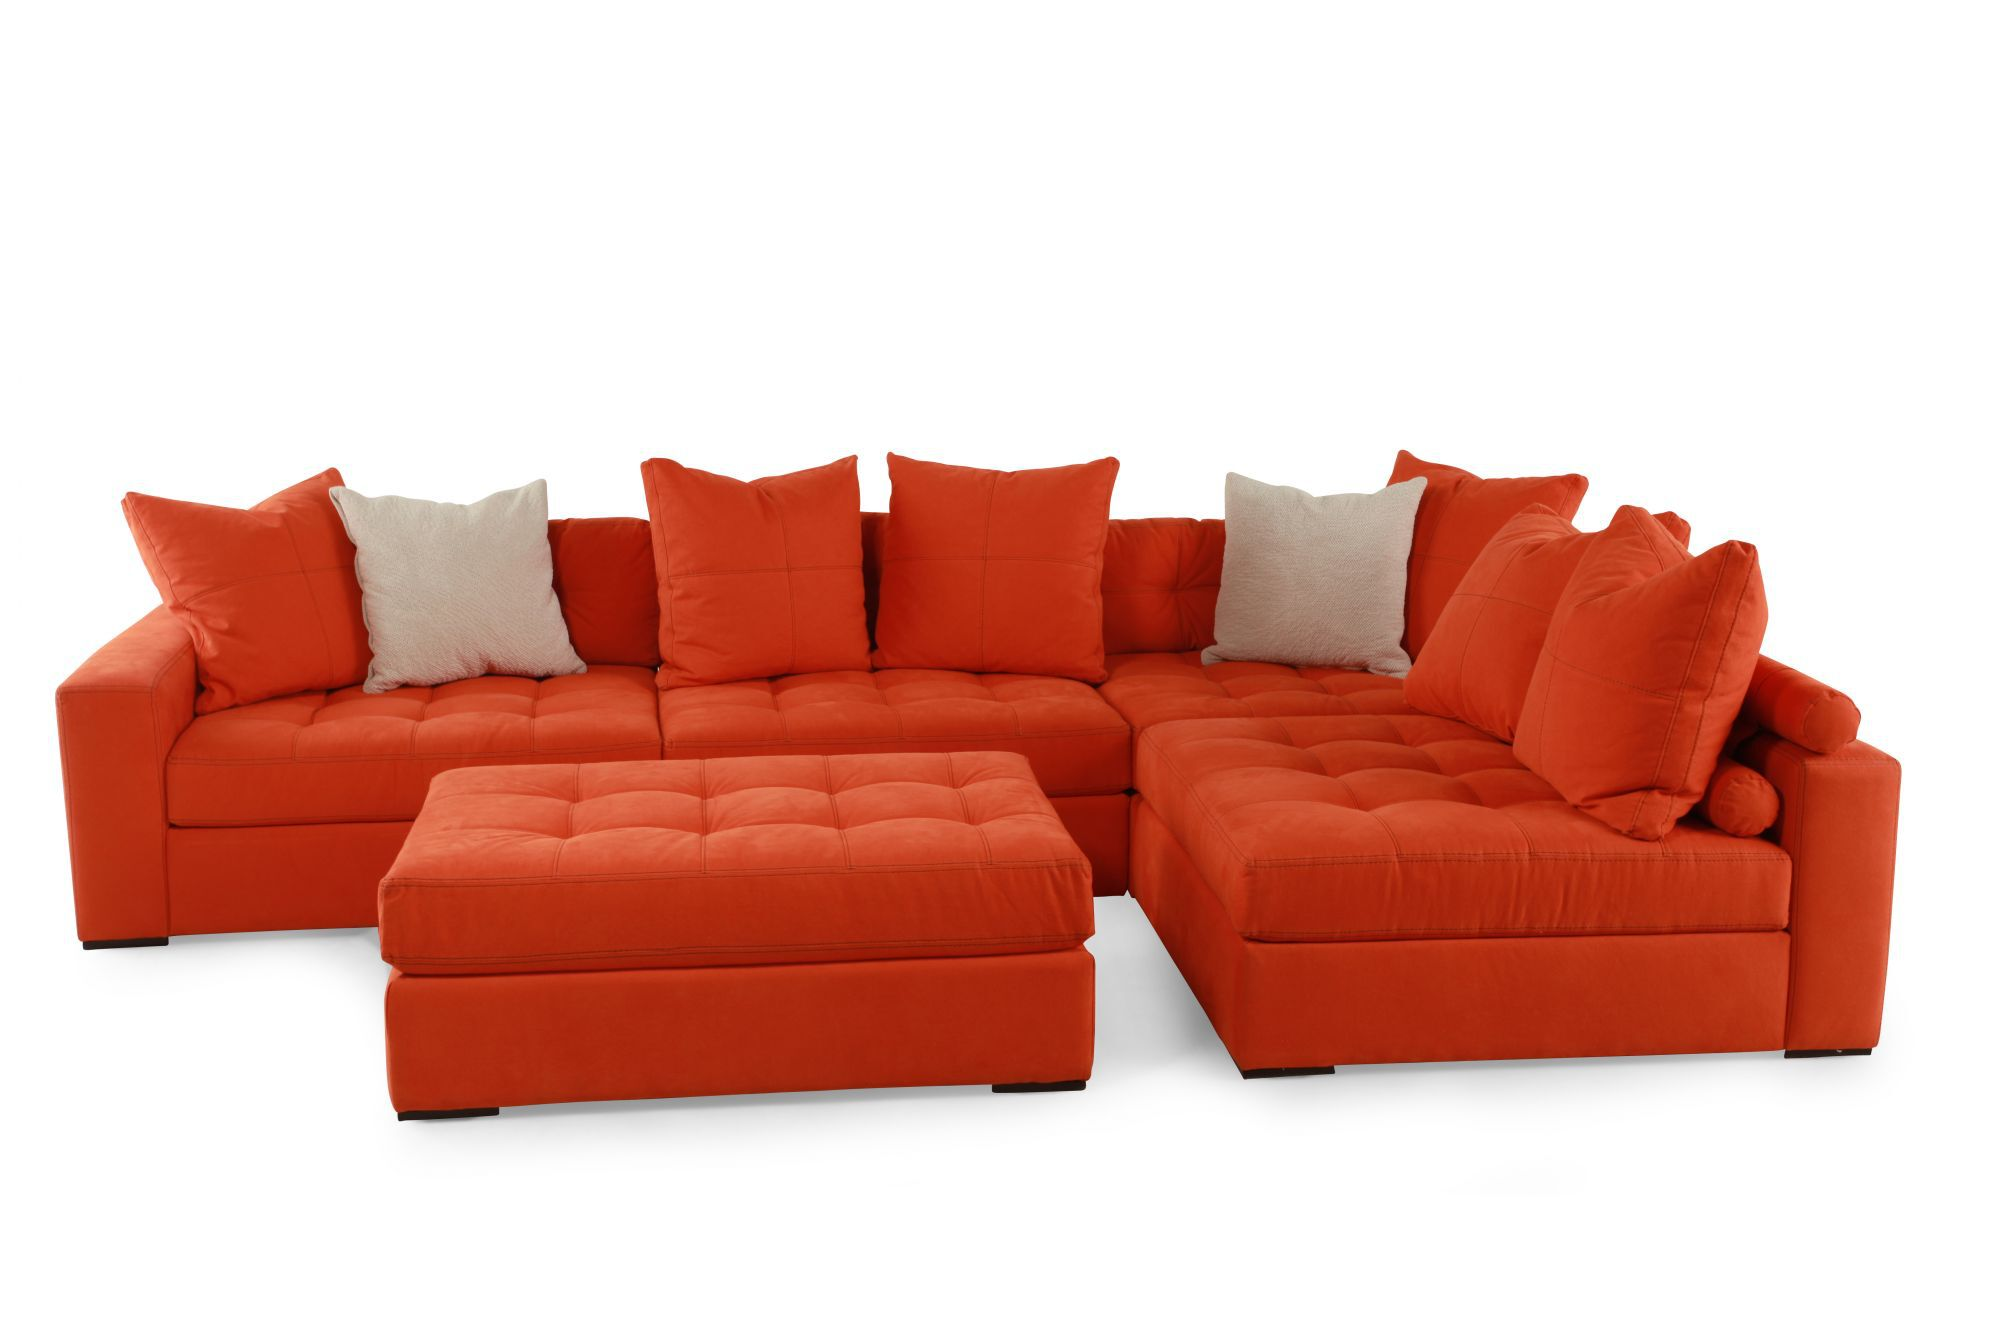 Five Piece Contemporary Tufted Sectional In Orange